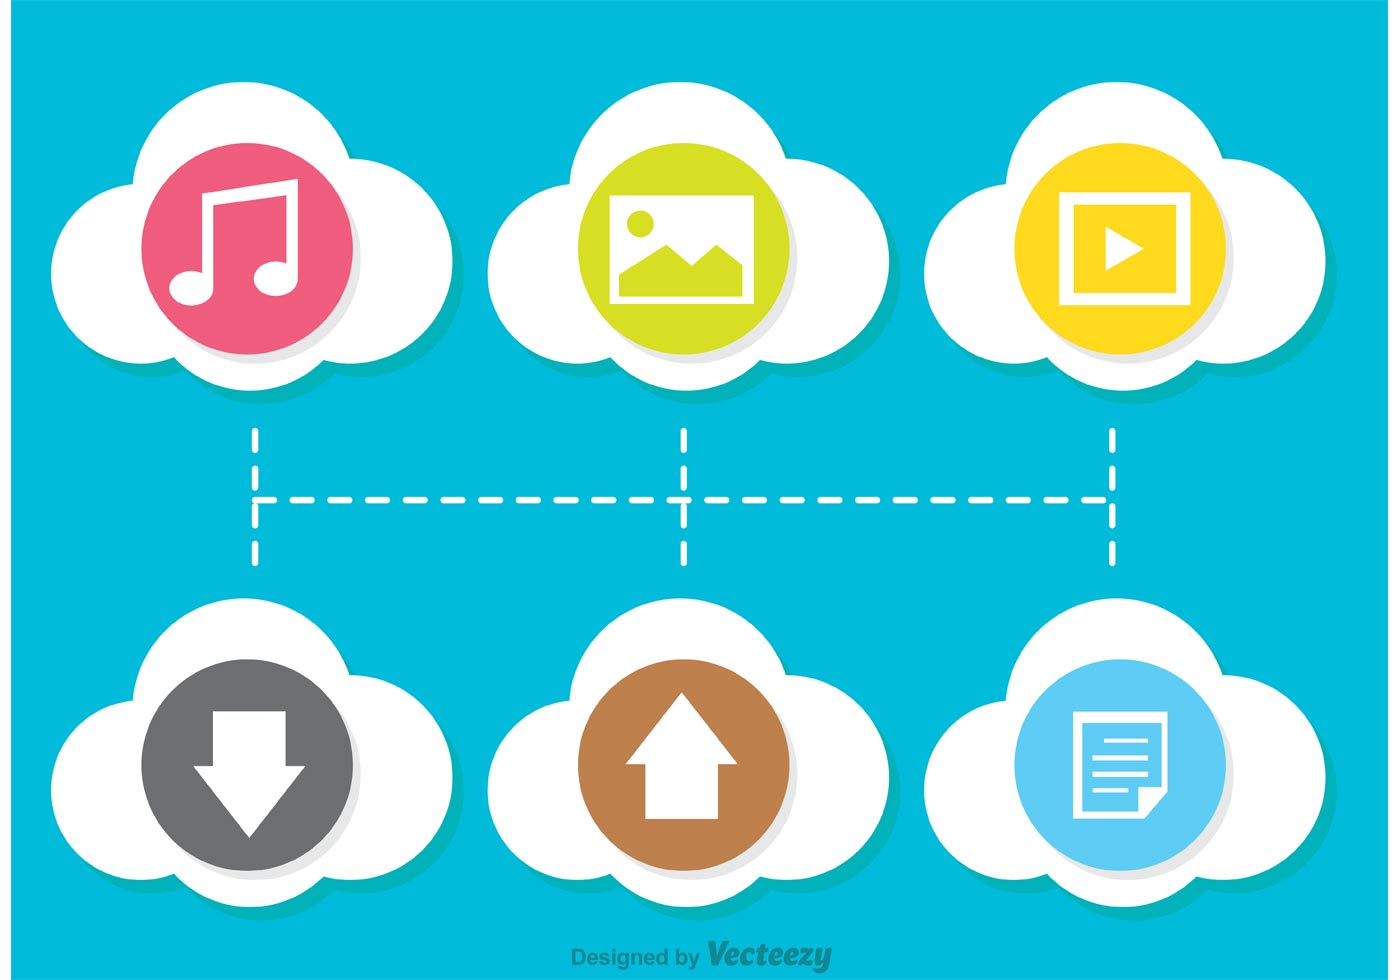 Colorful Flat Cloud Computing Icon Vectors - Download Free ...